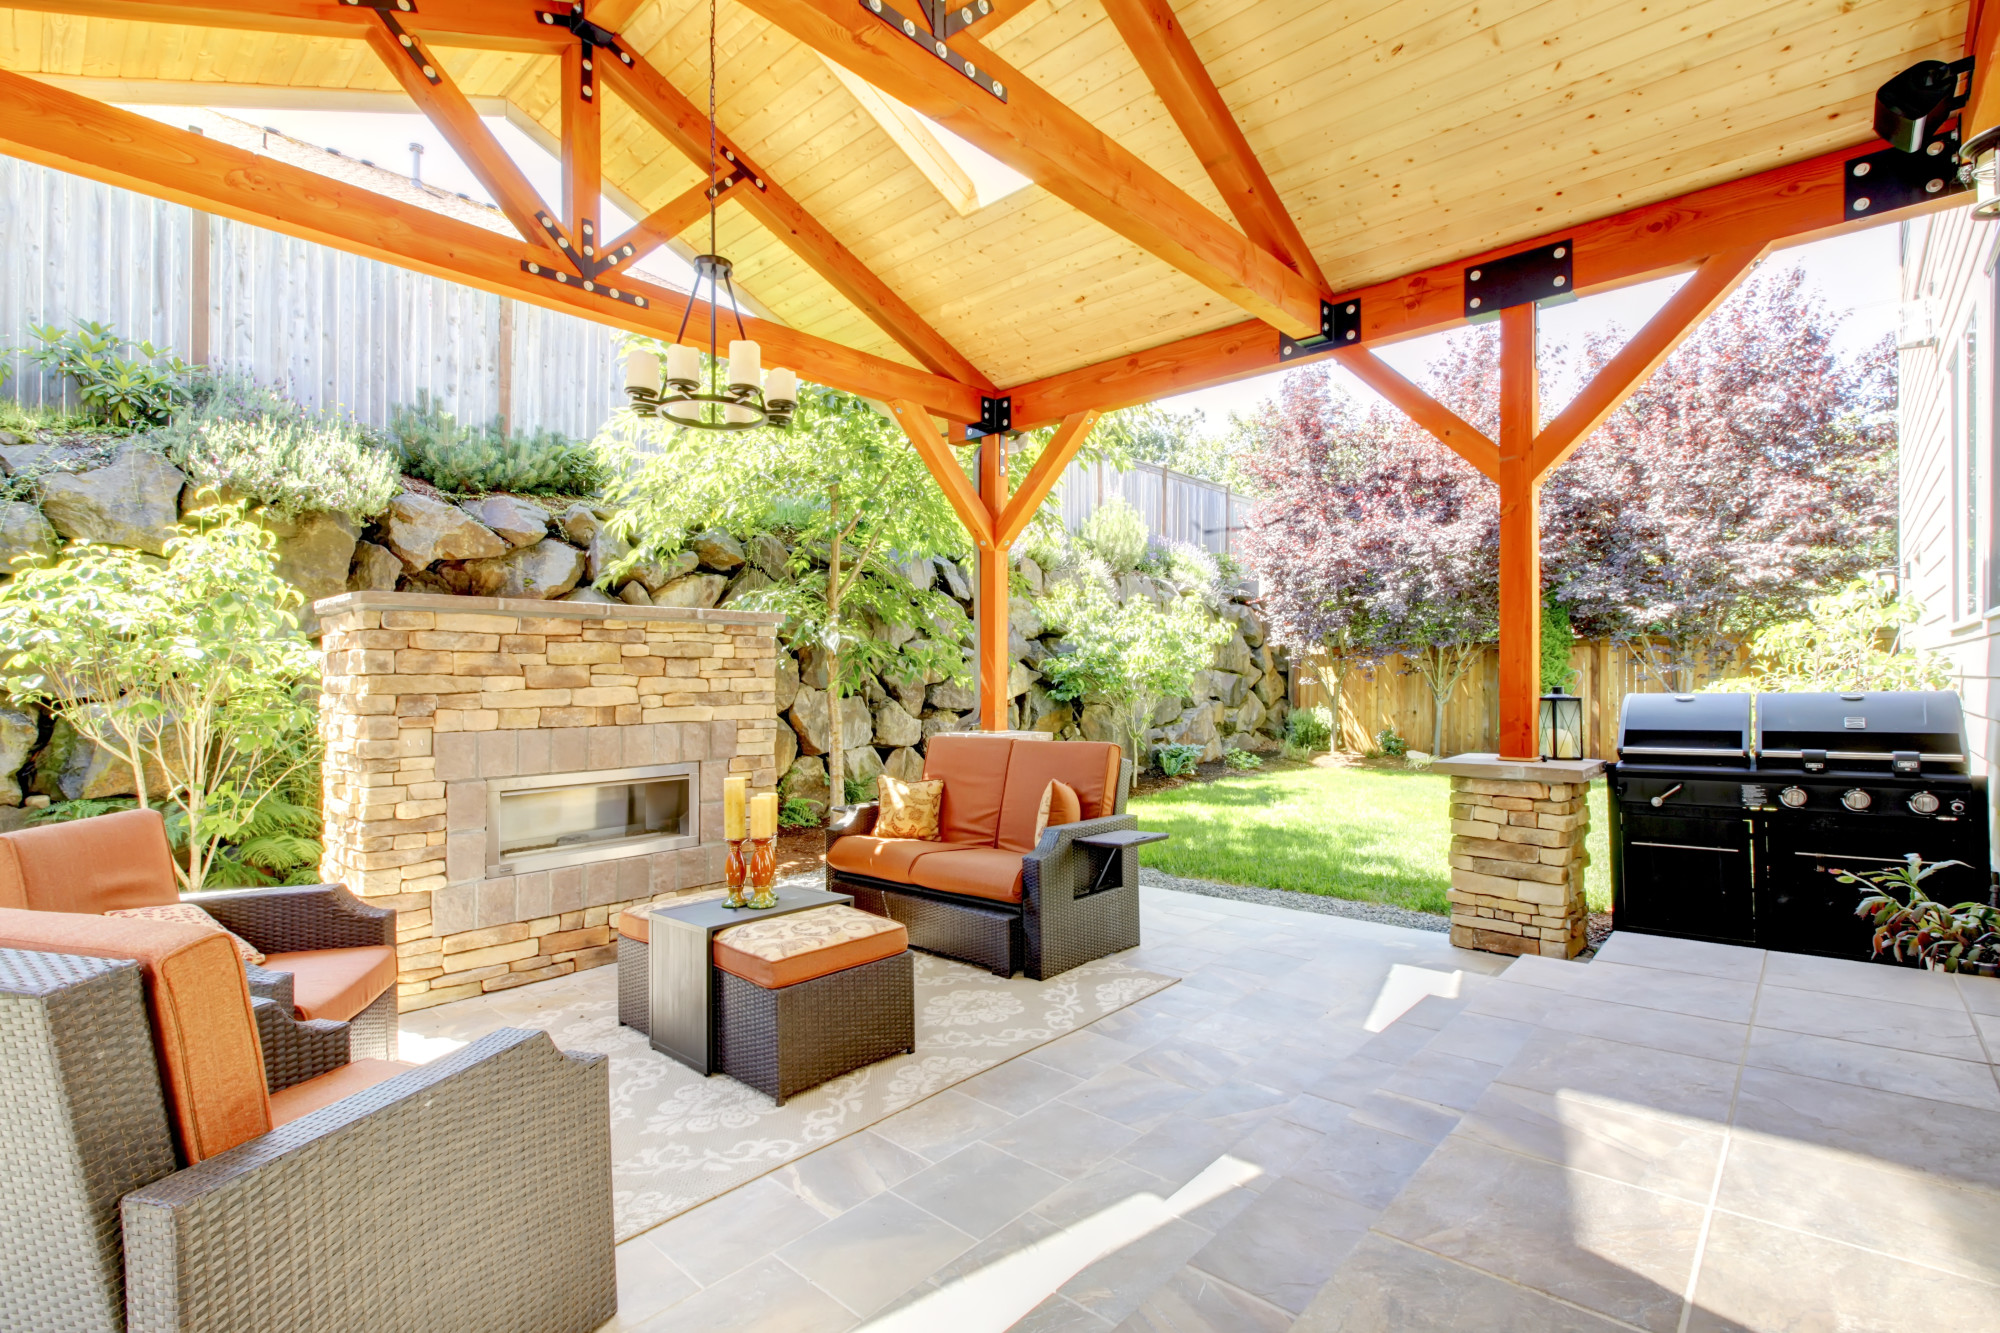 Cover Your Patio